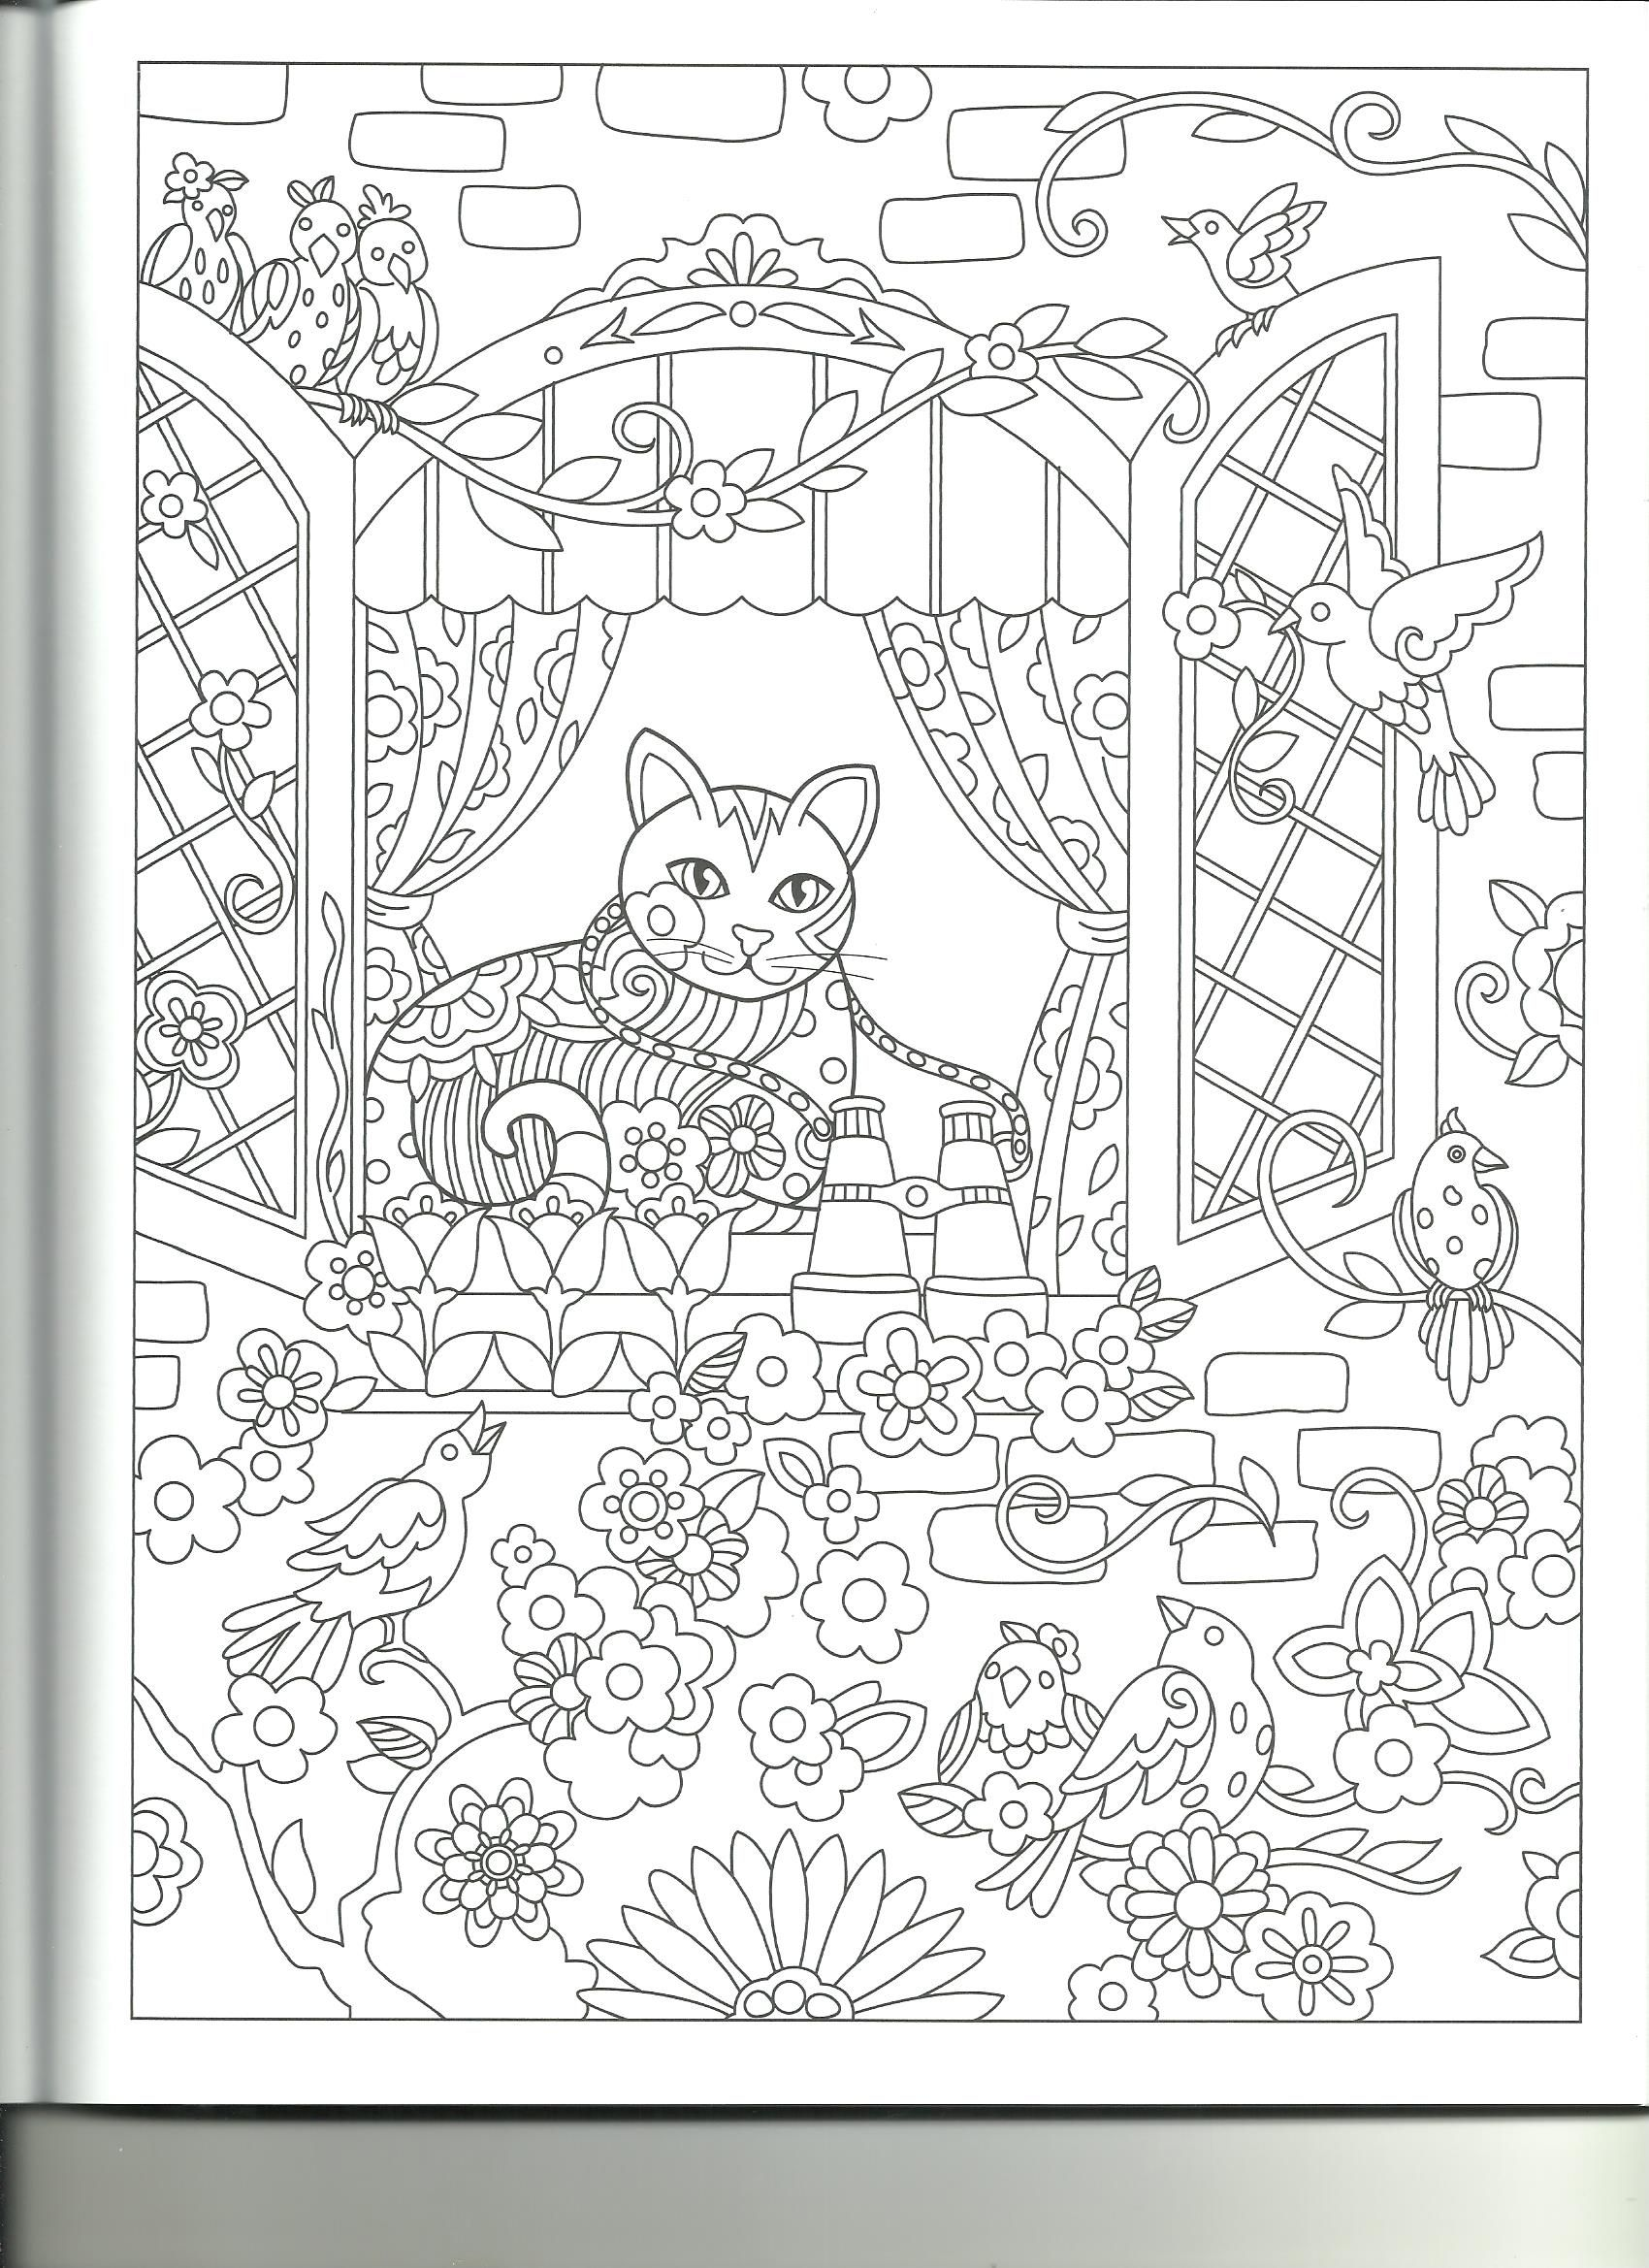 Adult Coloring, Coloring Pages, Coloring Sheets, Coloring Books, Printable  Coloring, Cat Colors, Creative Inspiration, Papercraft, Fiber Art